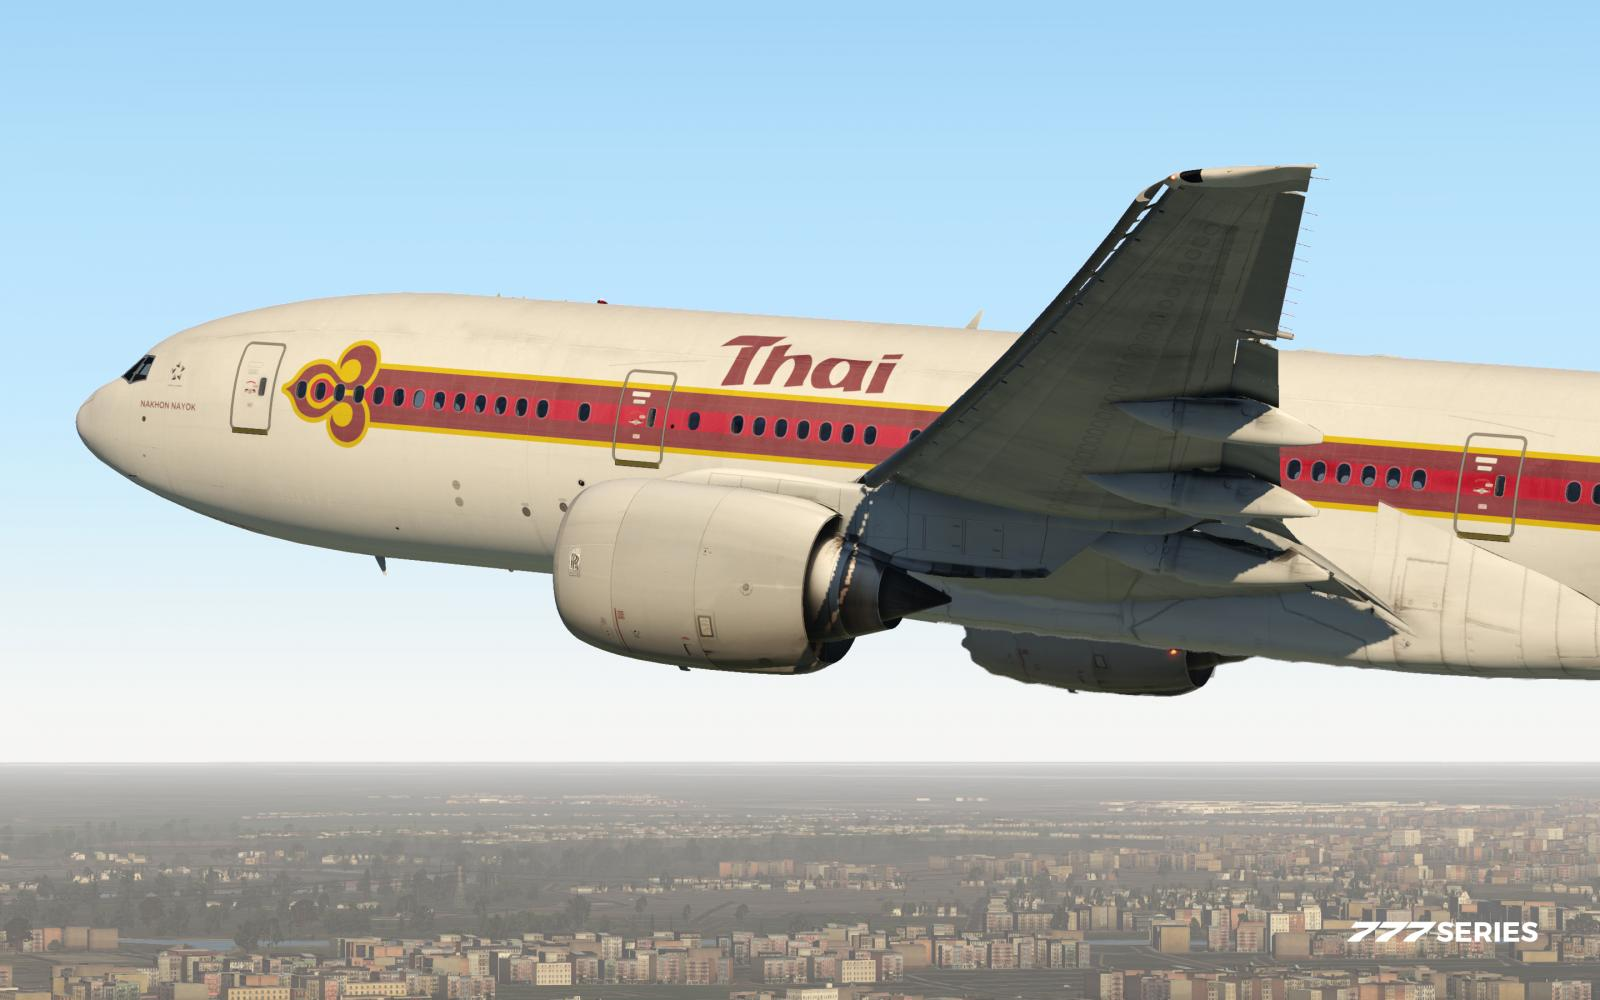 777 Series by Aerobridge - Airplane Development Notices - X